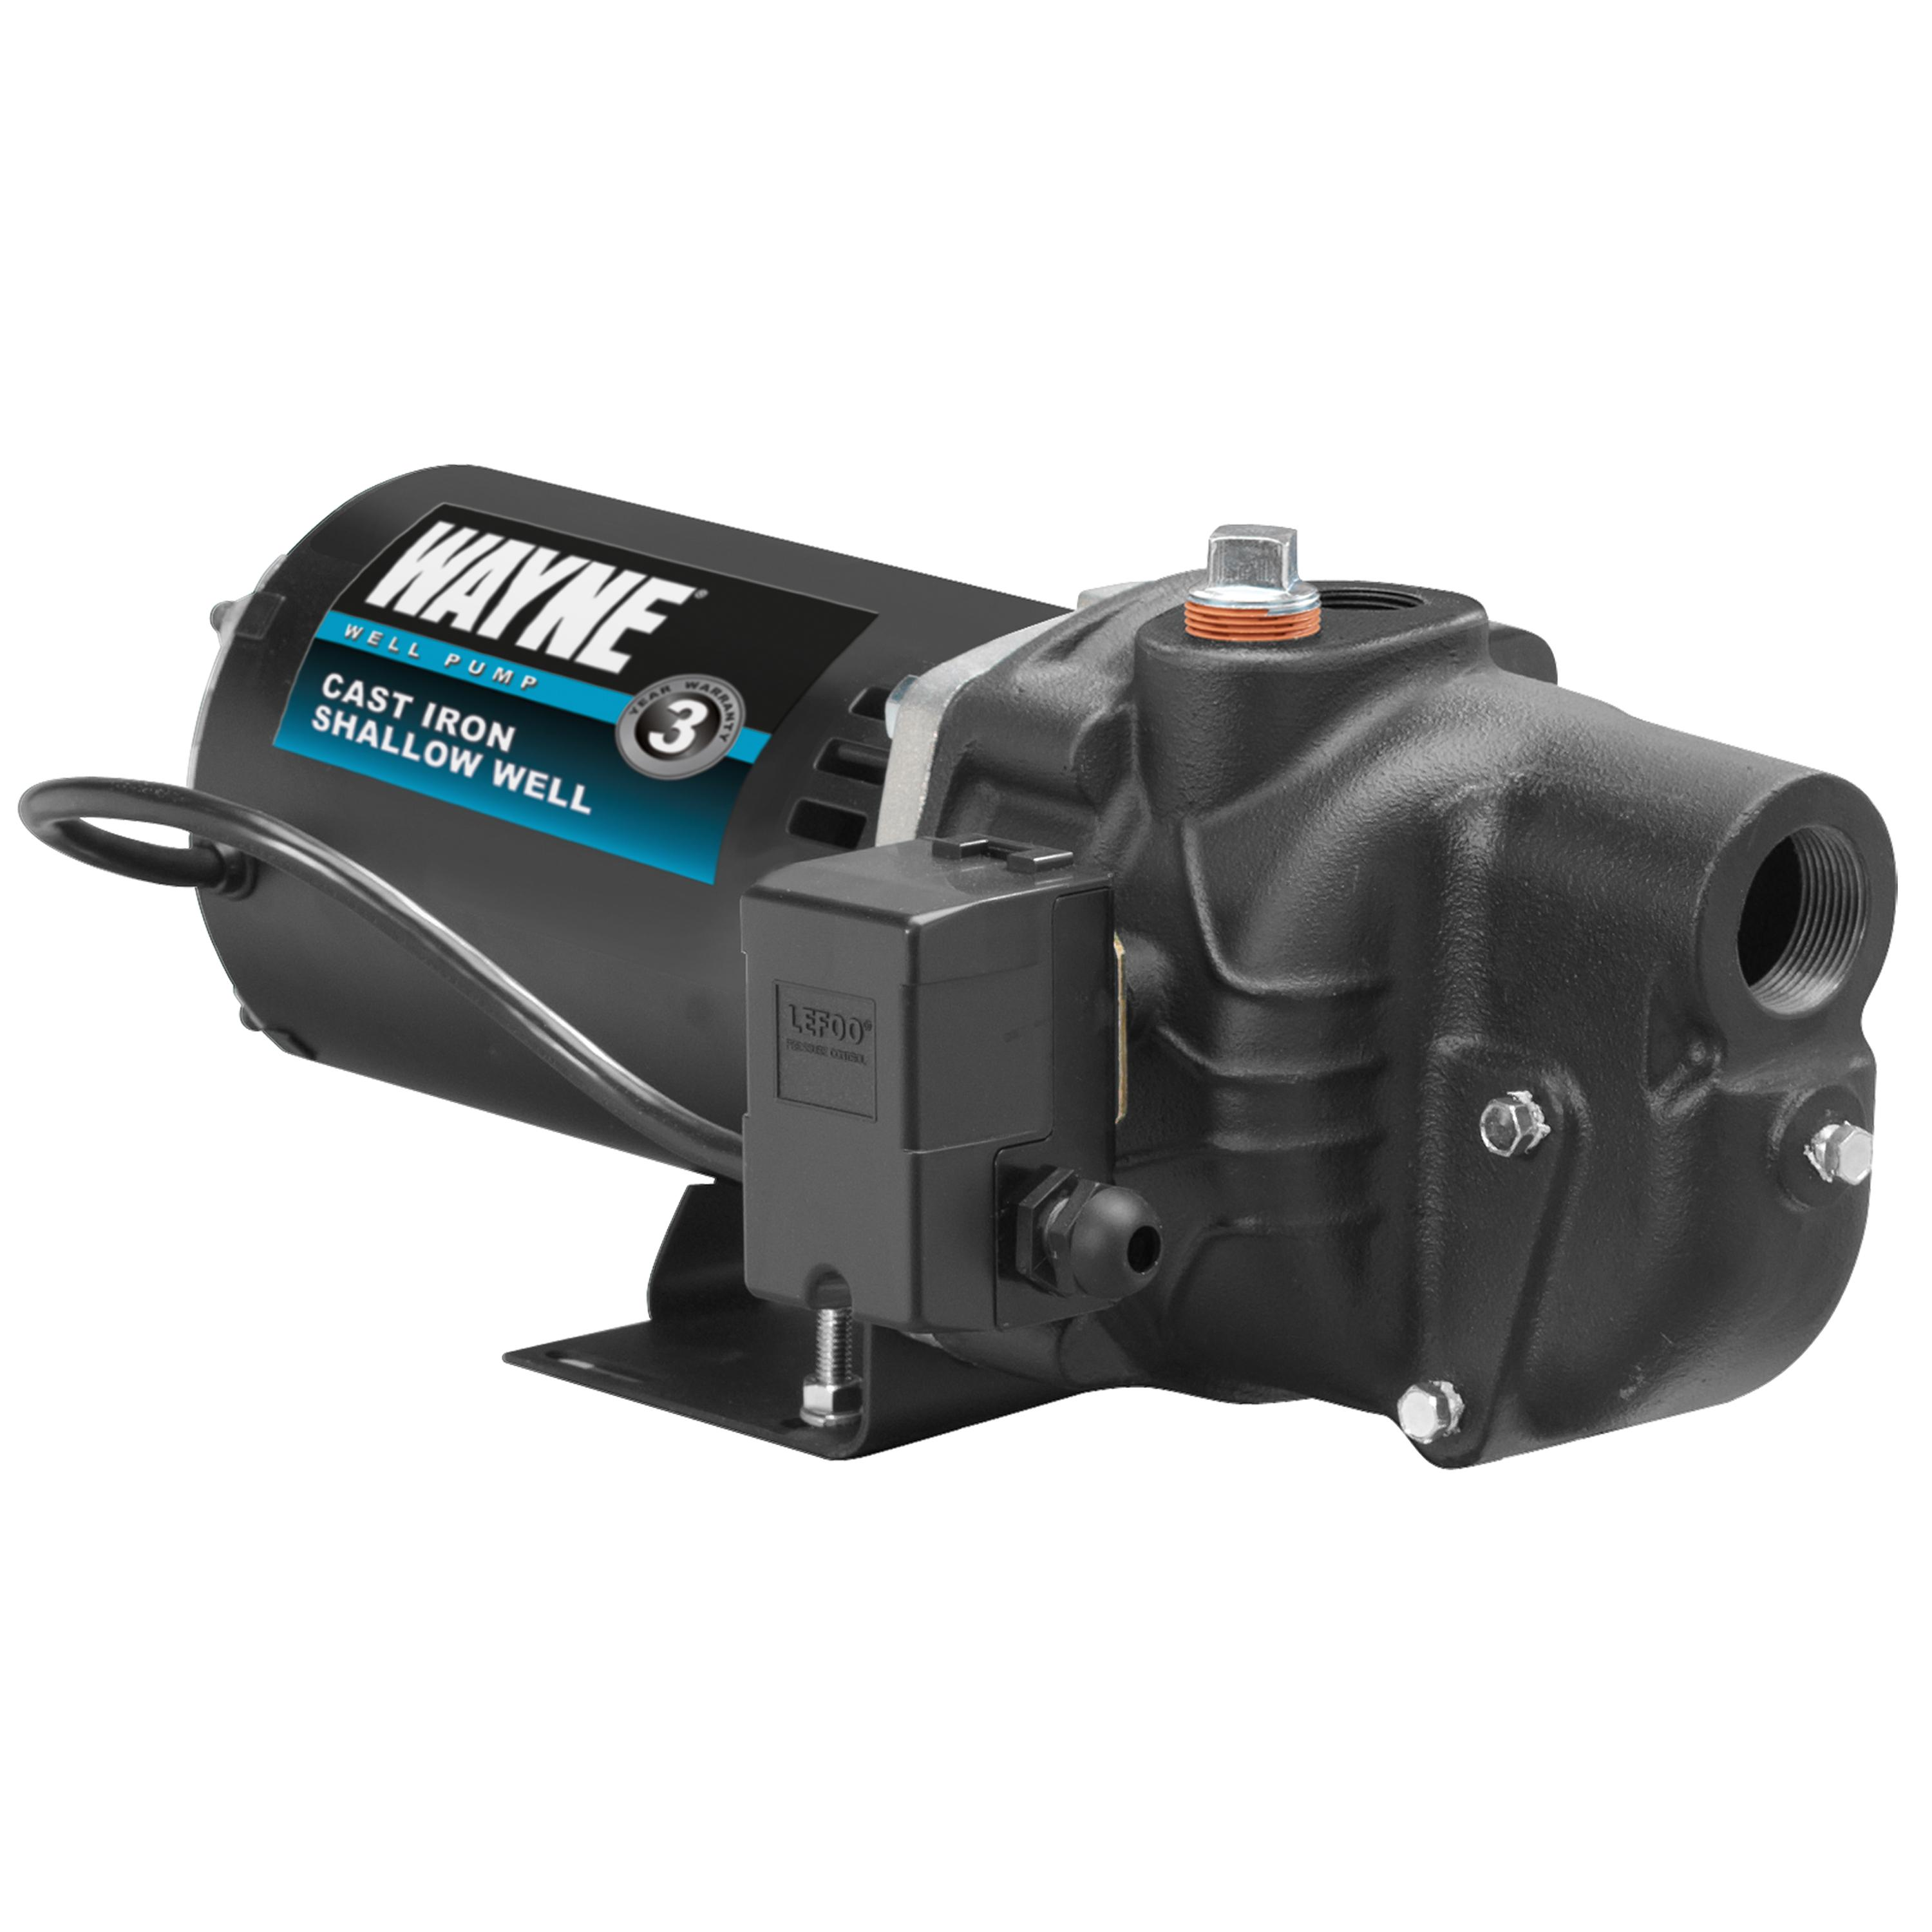 Wayne Sws50 1 2 Hp Cast Iron Shallow Well Jet Pump